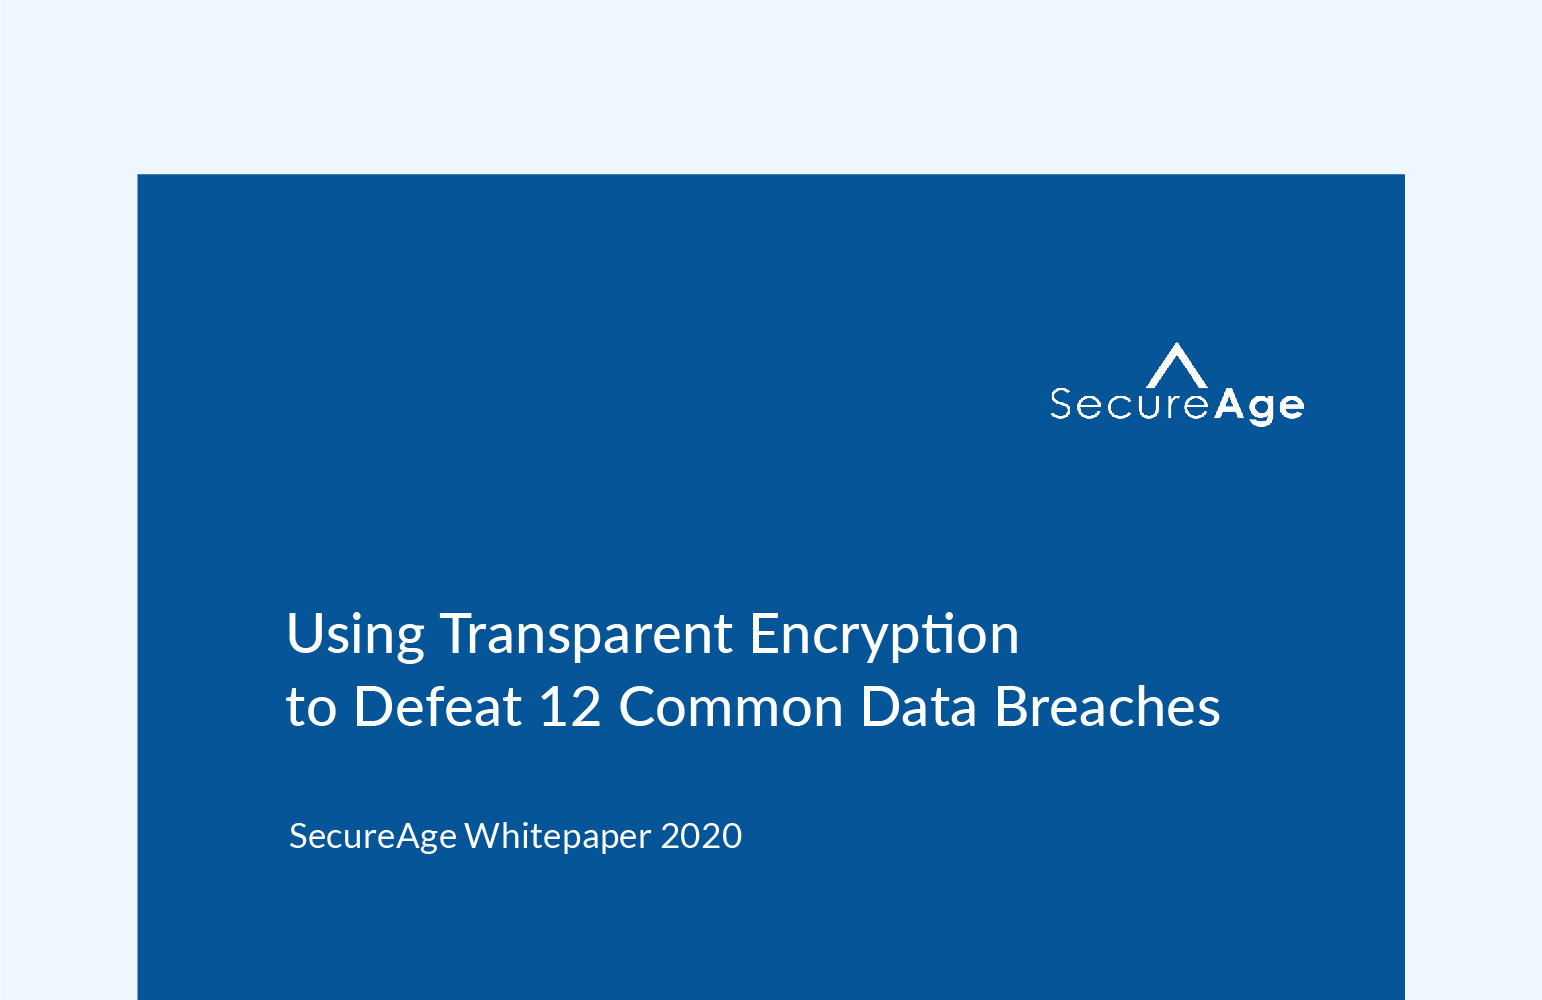 Using Transparent Encryption to Defeat 12 Common Data Breaches